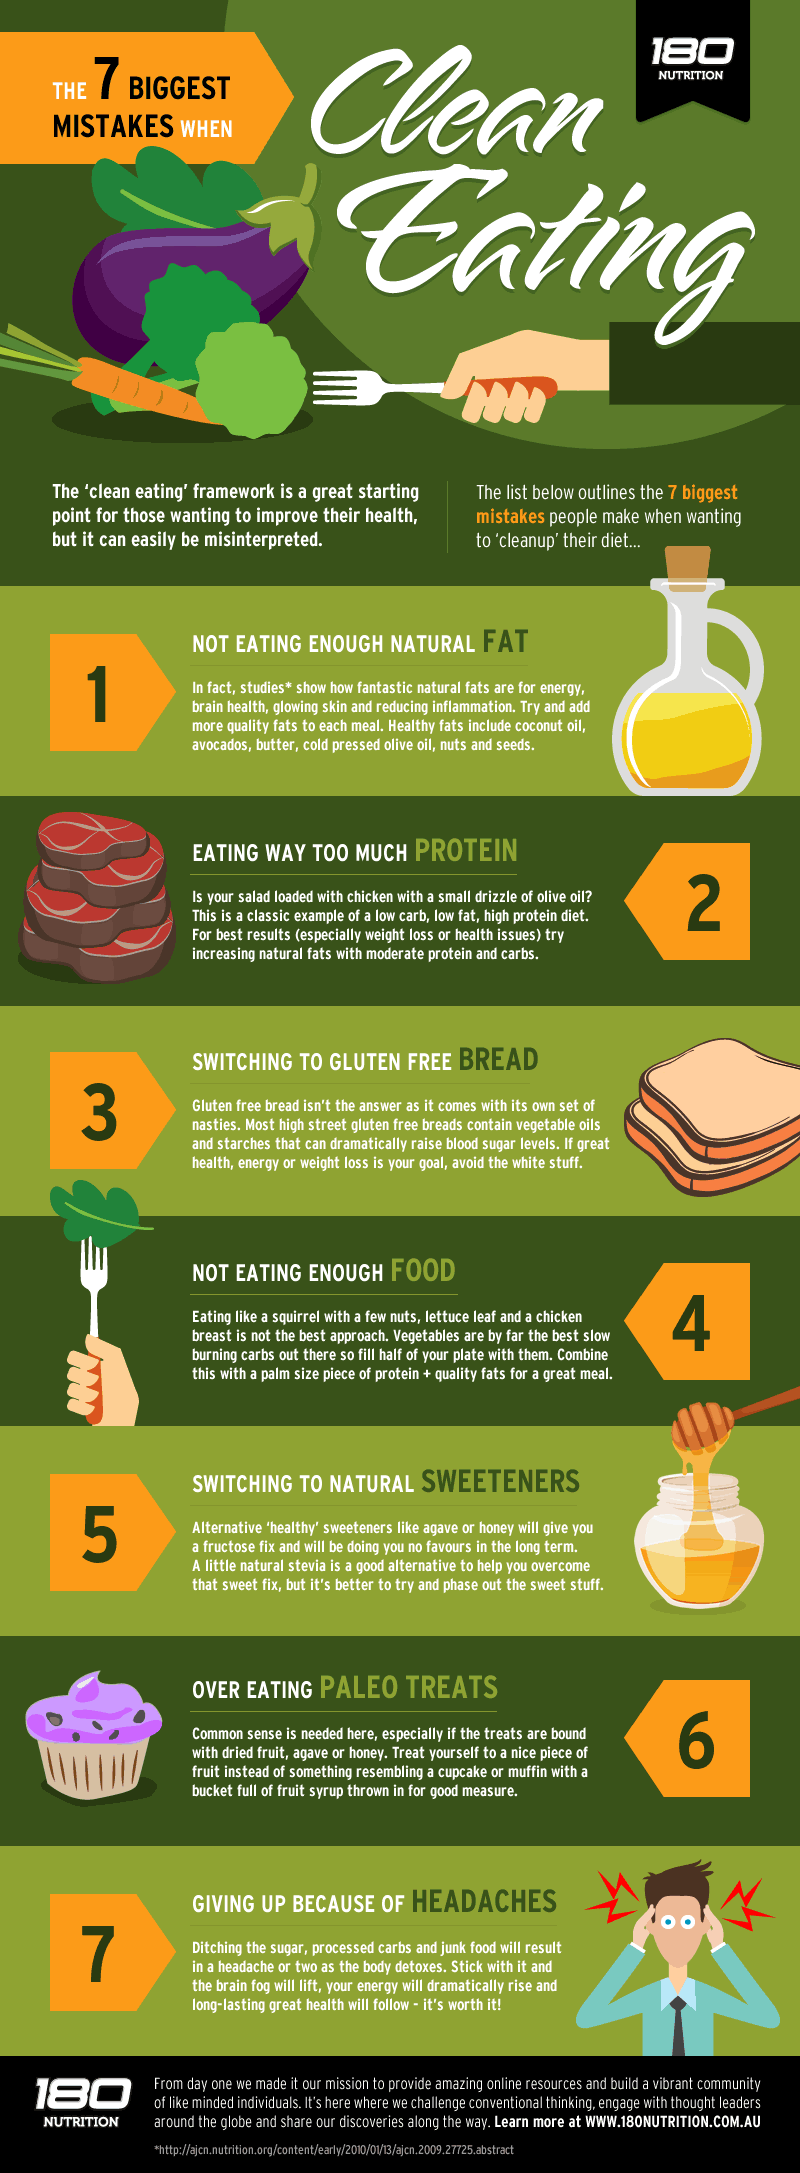 Clean-Eating-Mistakes-infographic-plaza